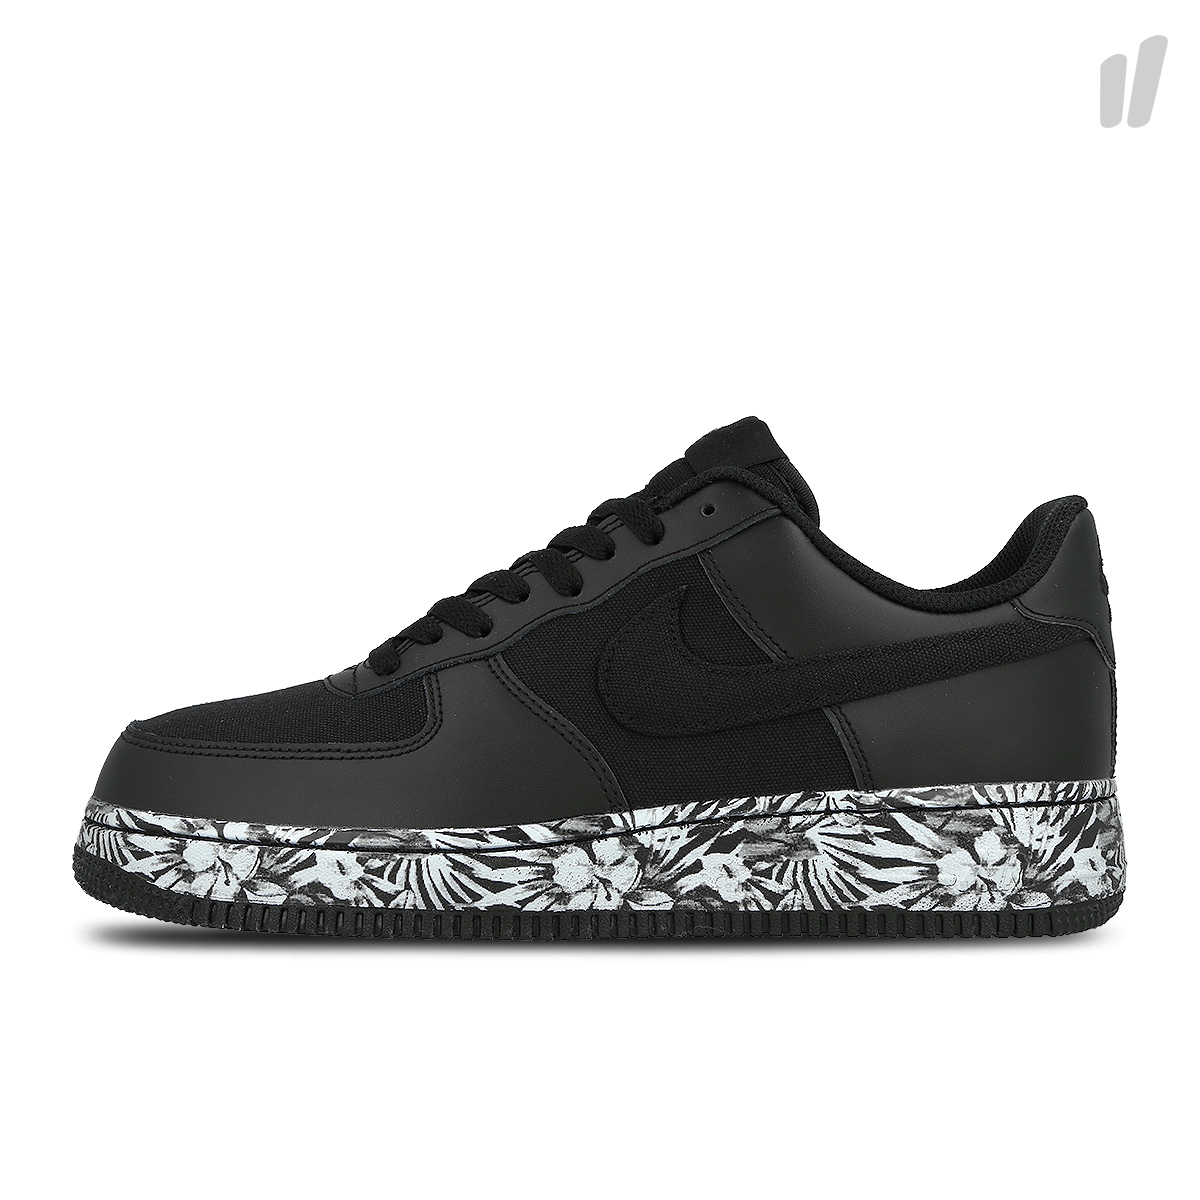 nike air force 1 820266 001 overkill berlin graffiti bekleidung sneaker. Black Bedroom Furniture Sets. Home Design Ideas